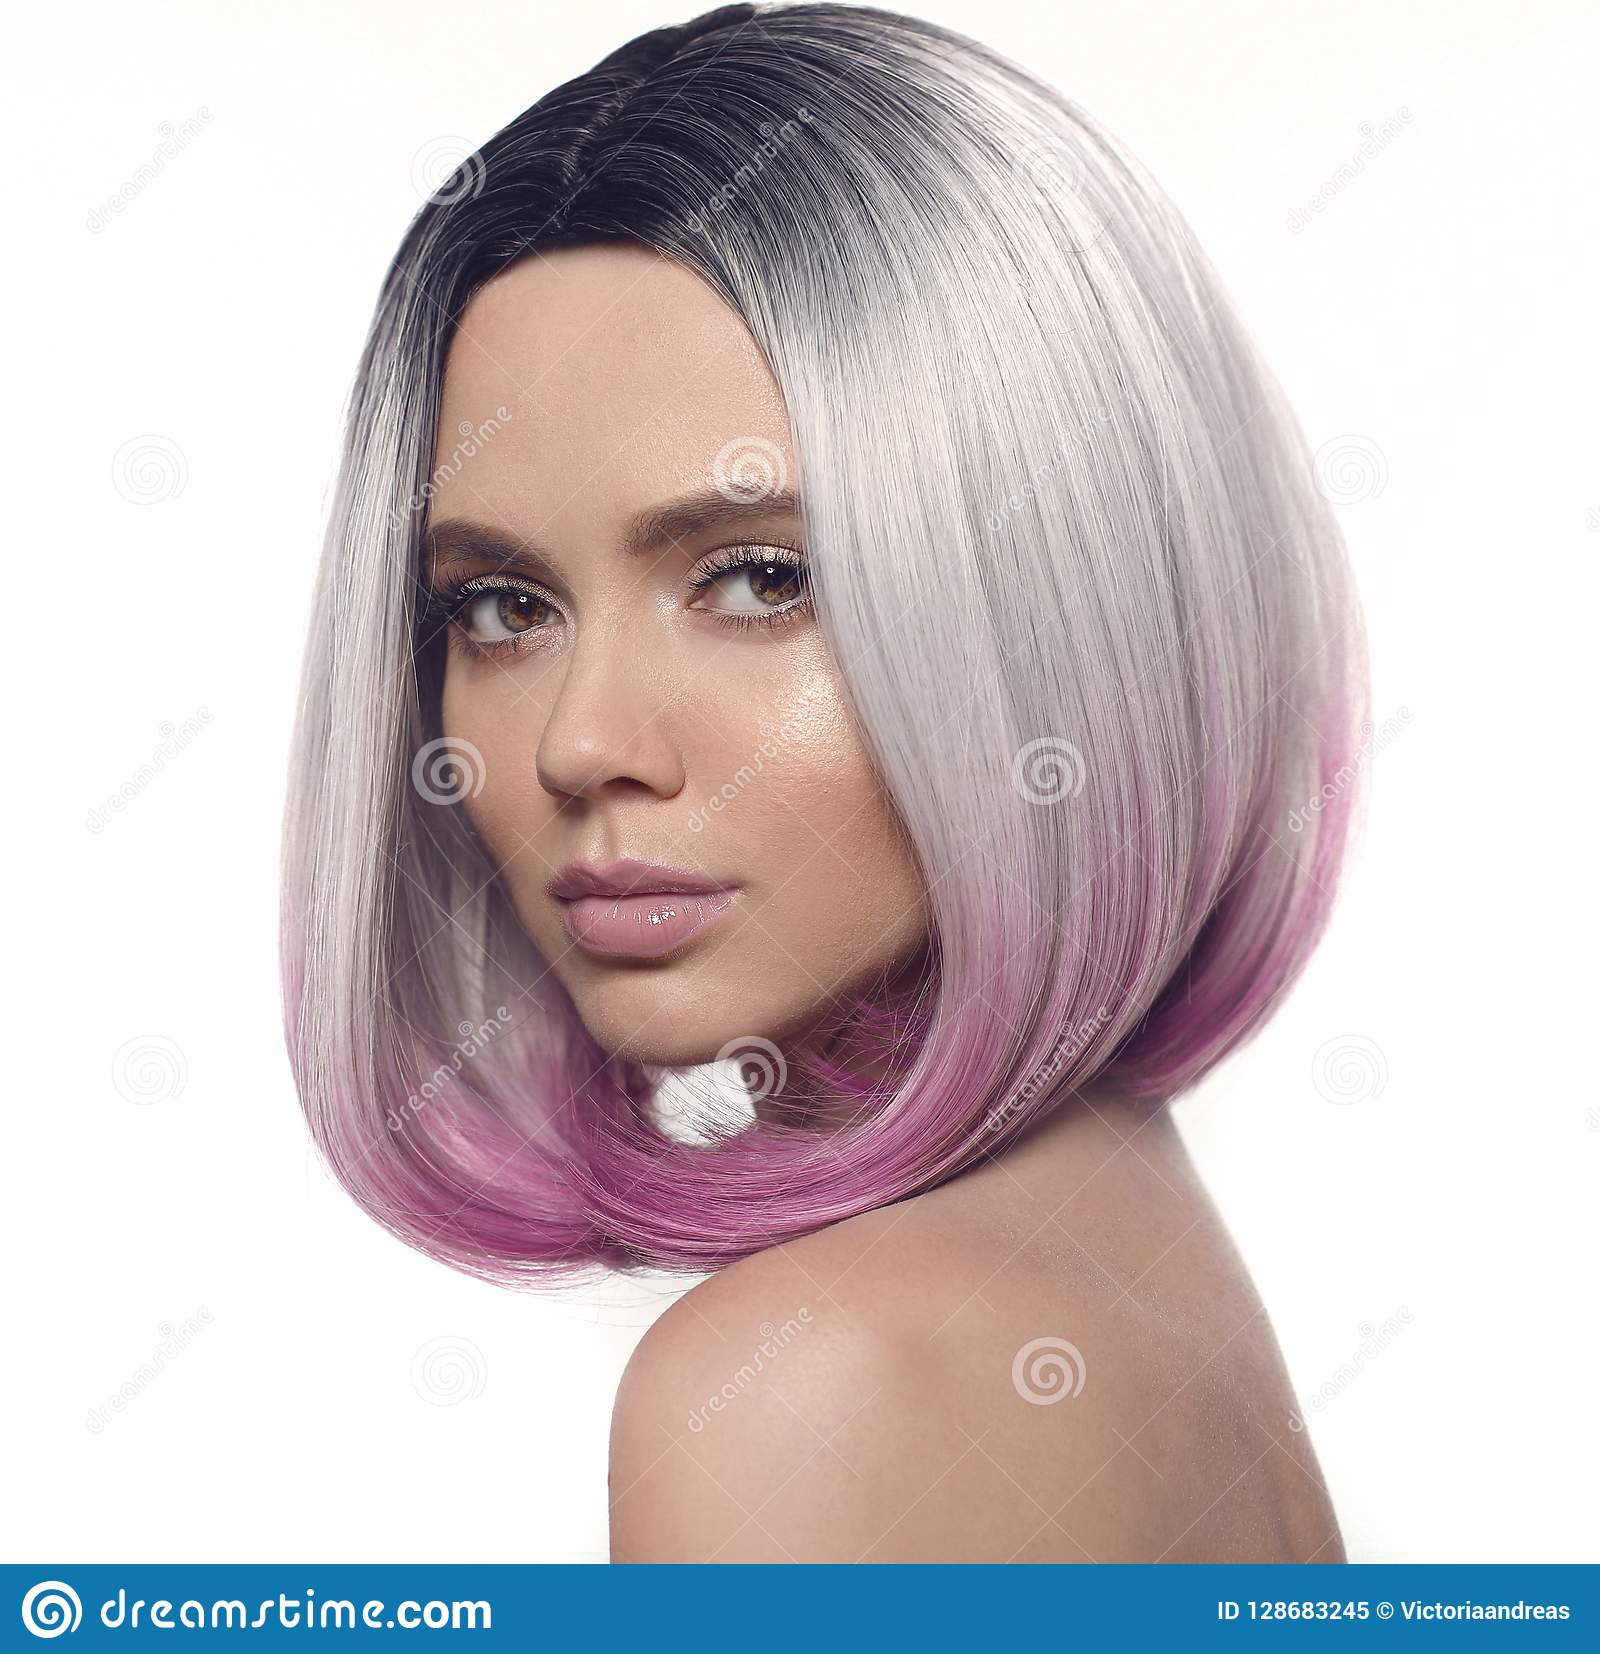 Ombre Bob Hairstyle Girl Portrait Beautiful Short Hair Coloring